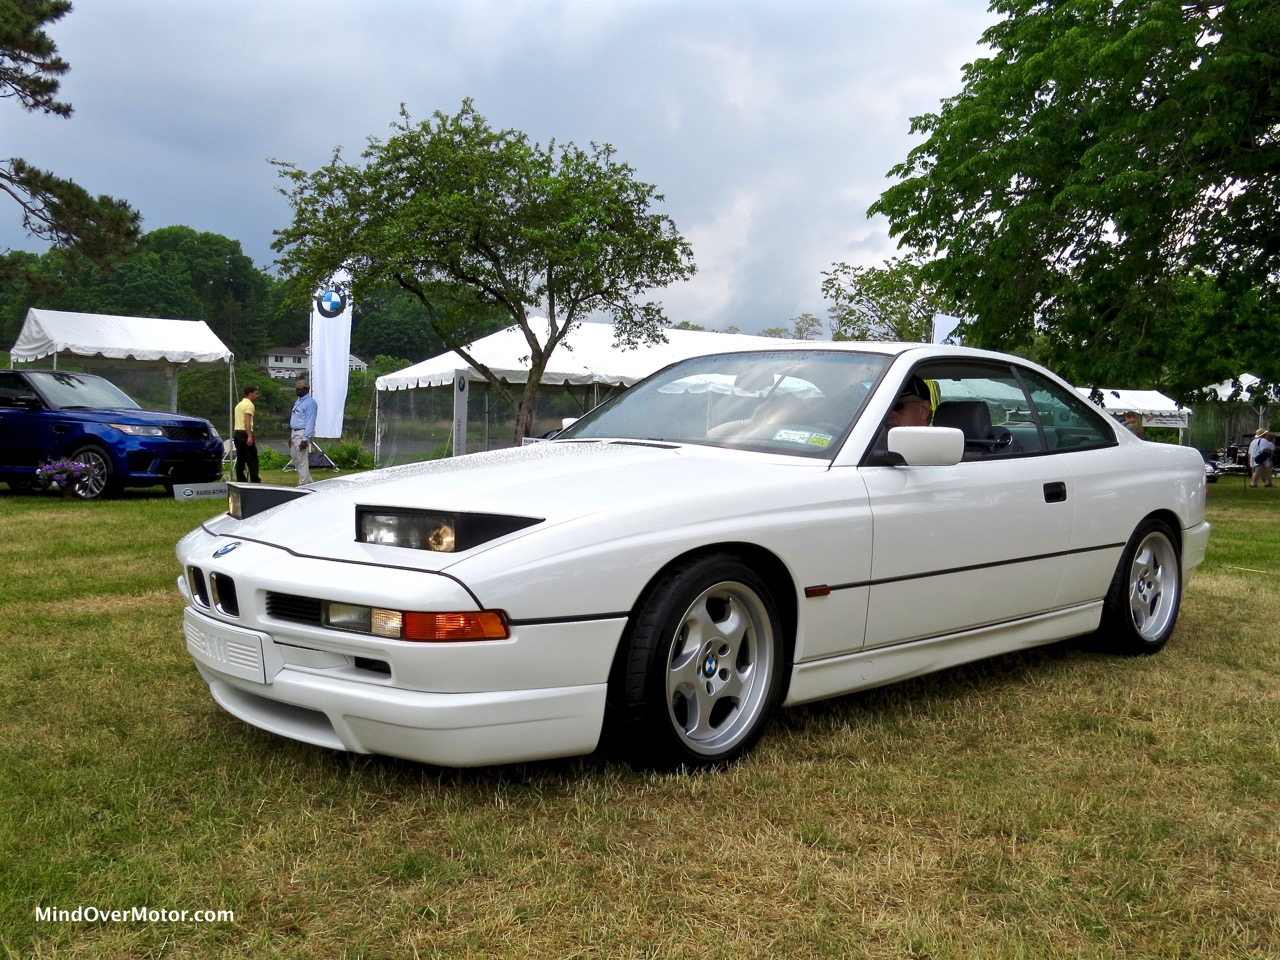 BMW 850CSi Headlights Up Front